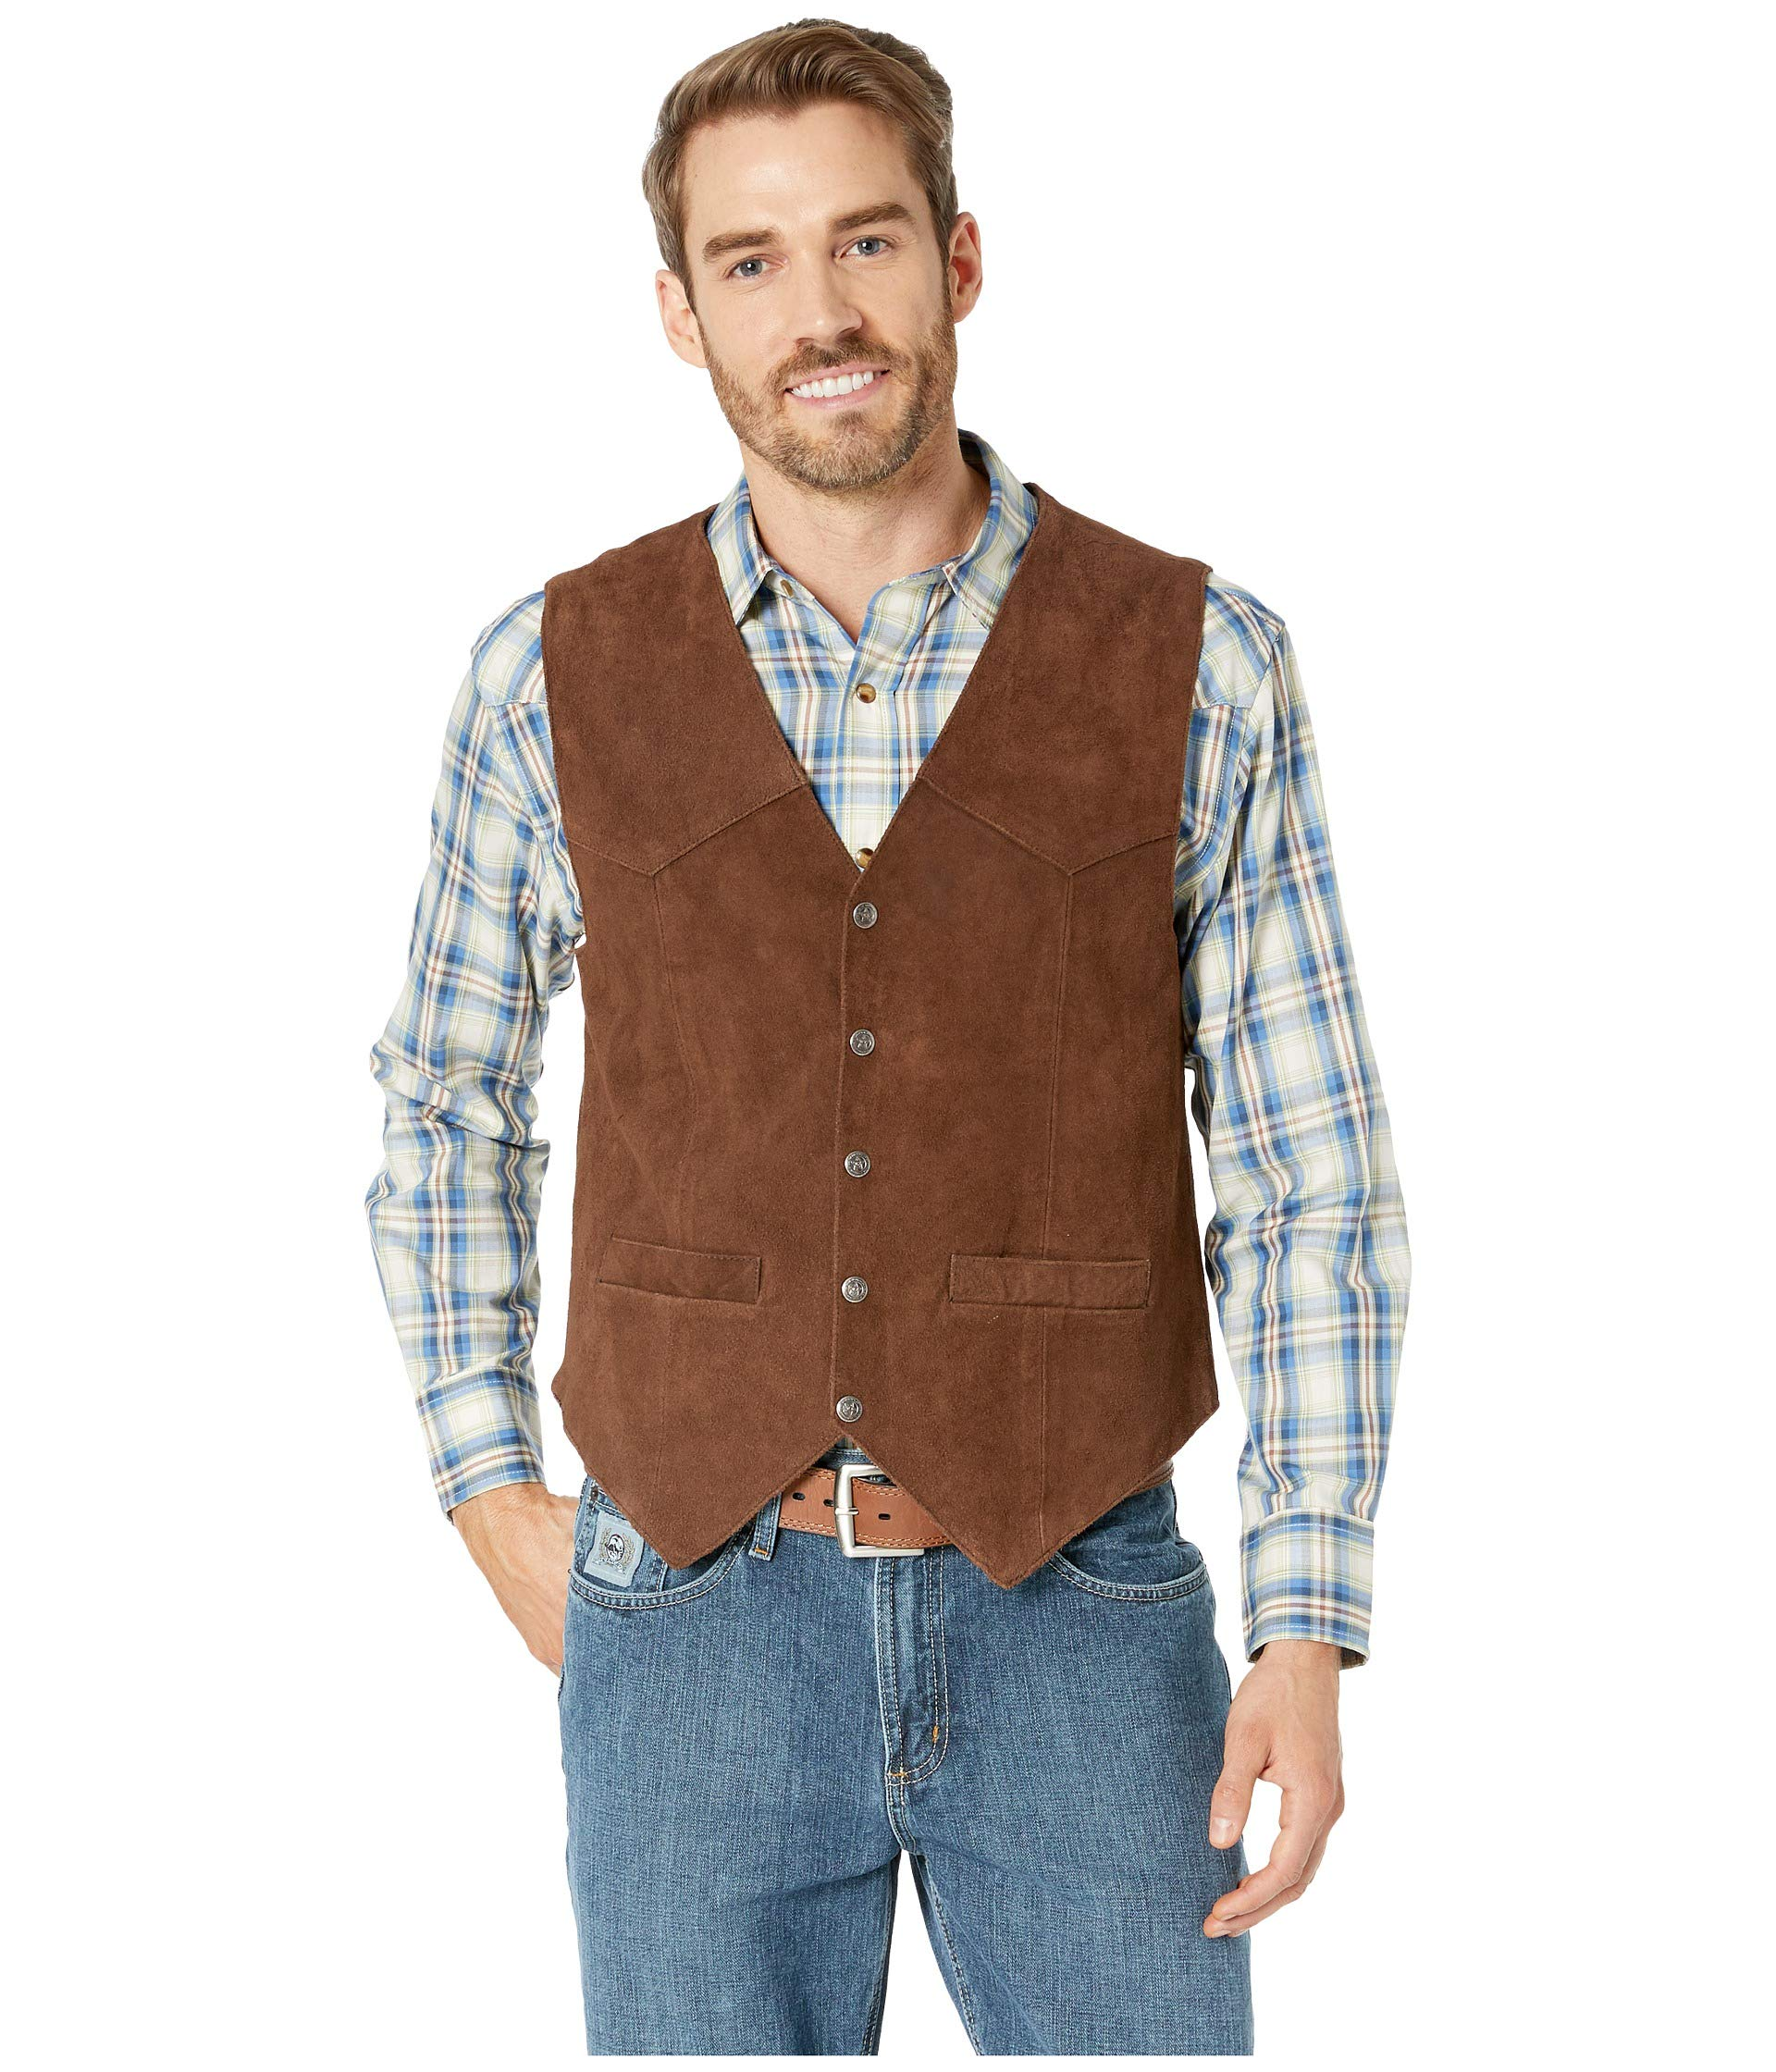 Scully Men's Rugged Calf Suede Vest Dark Brown Medium by Scully